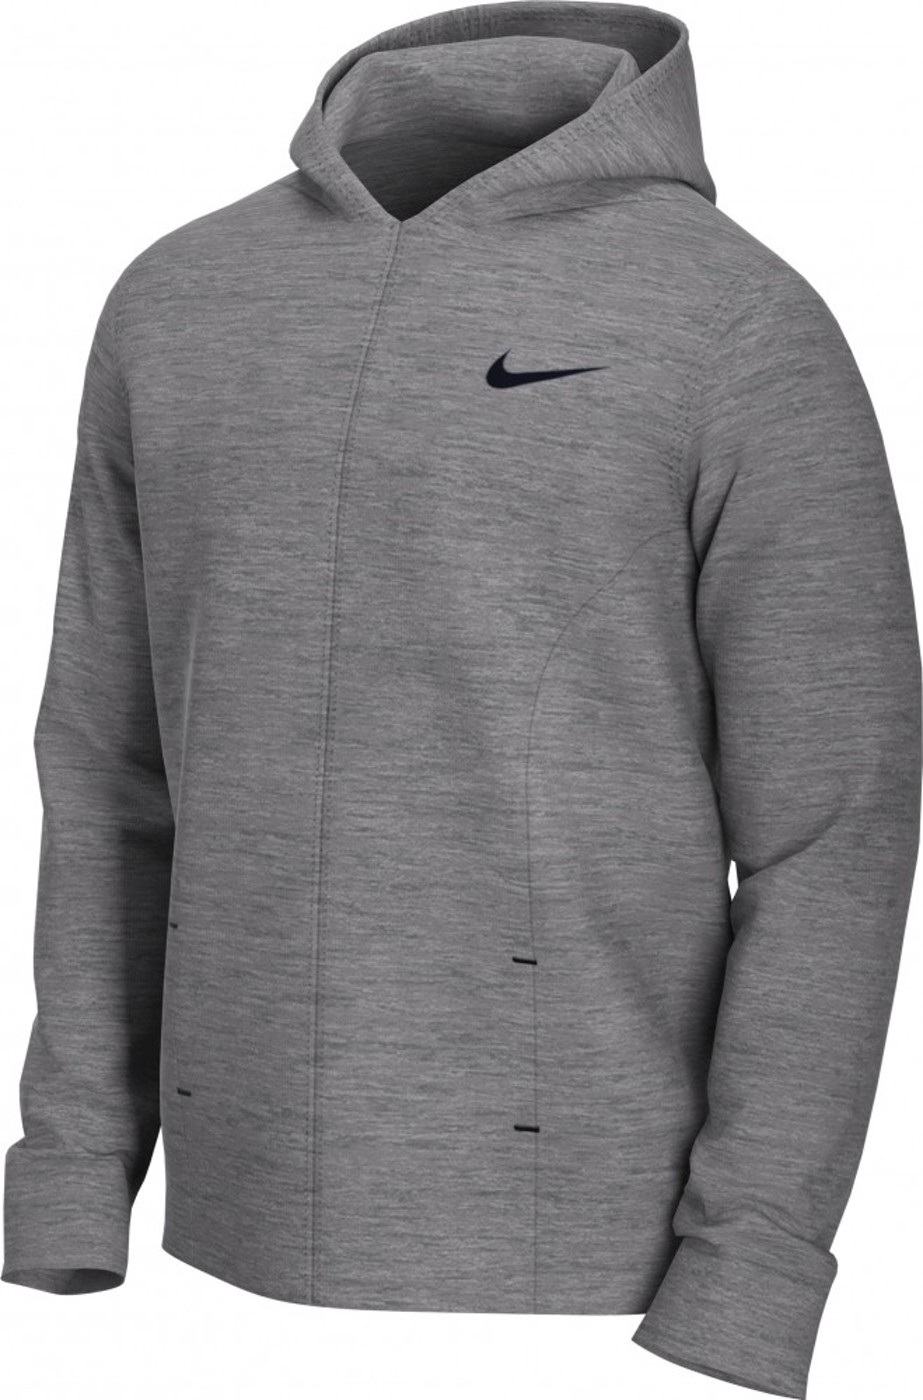 Nike Yoga Dri-FIT Full-Z - Herren